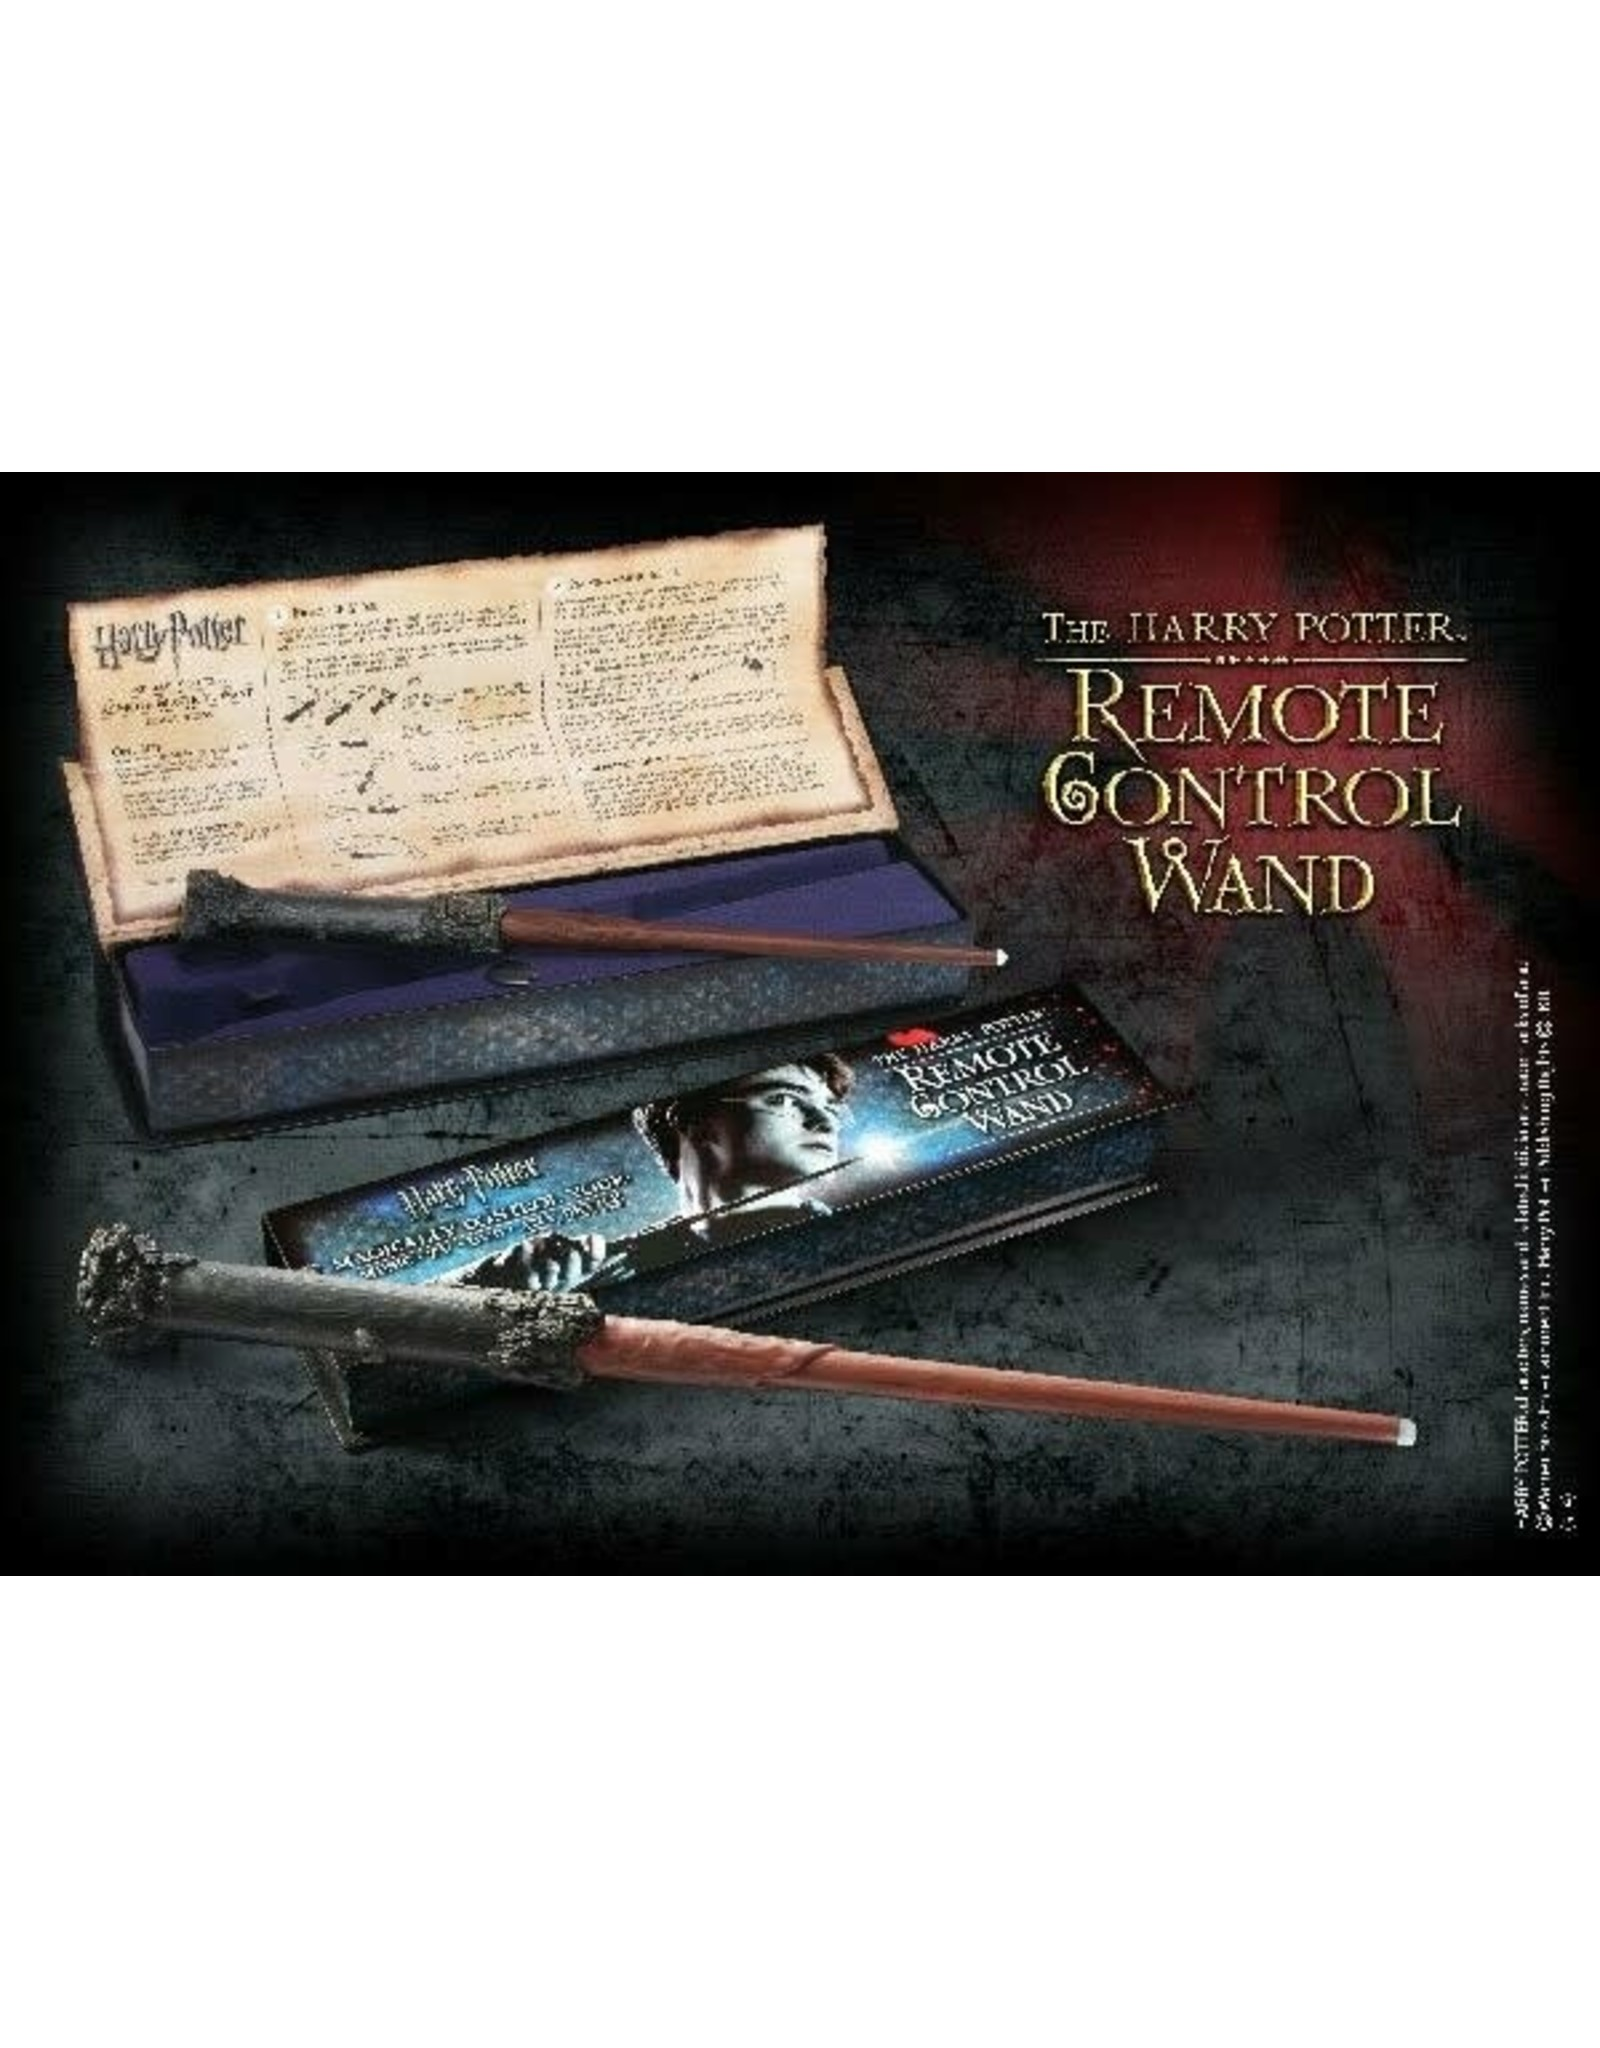 Noble Collection HARRY POTTER Remote Control Wand - Harry